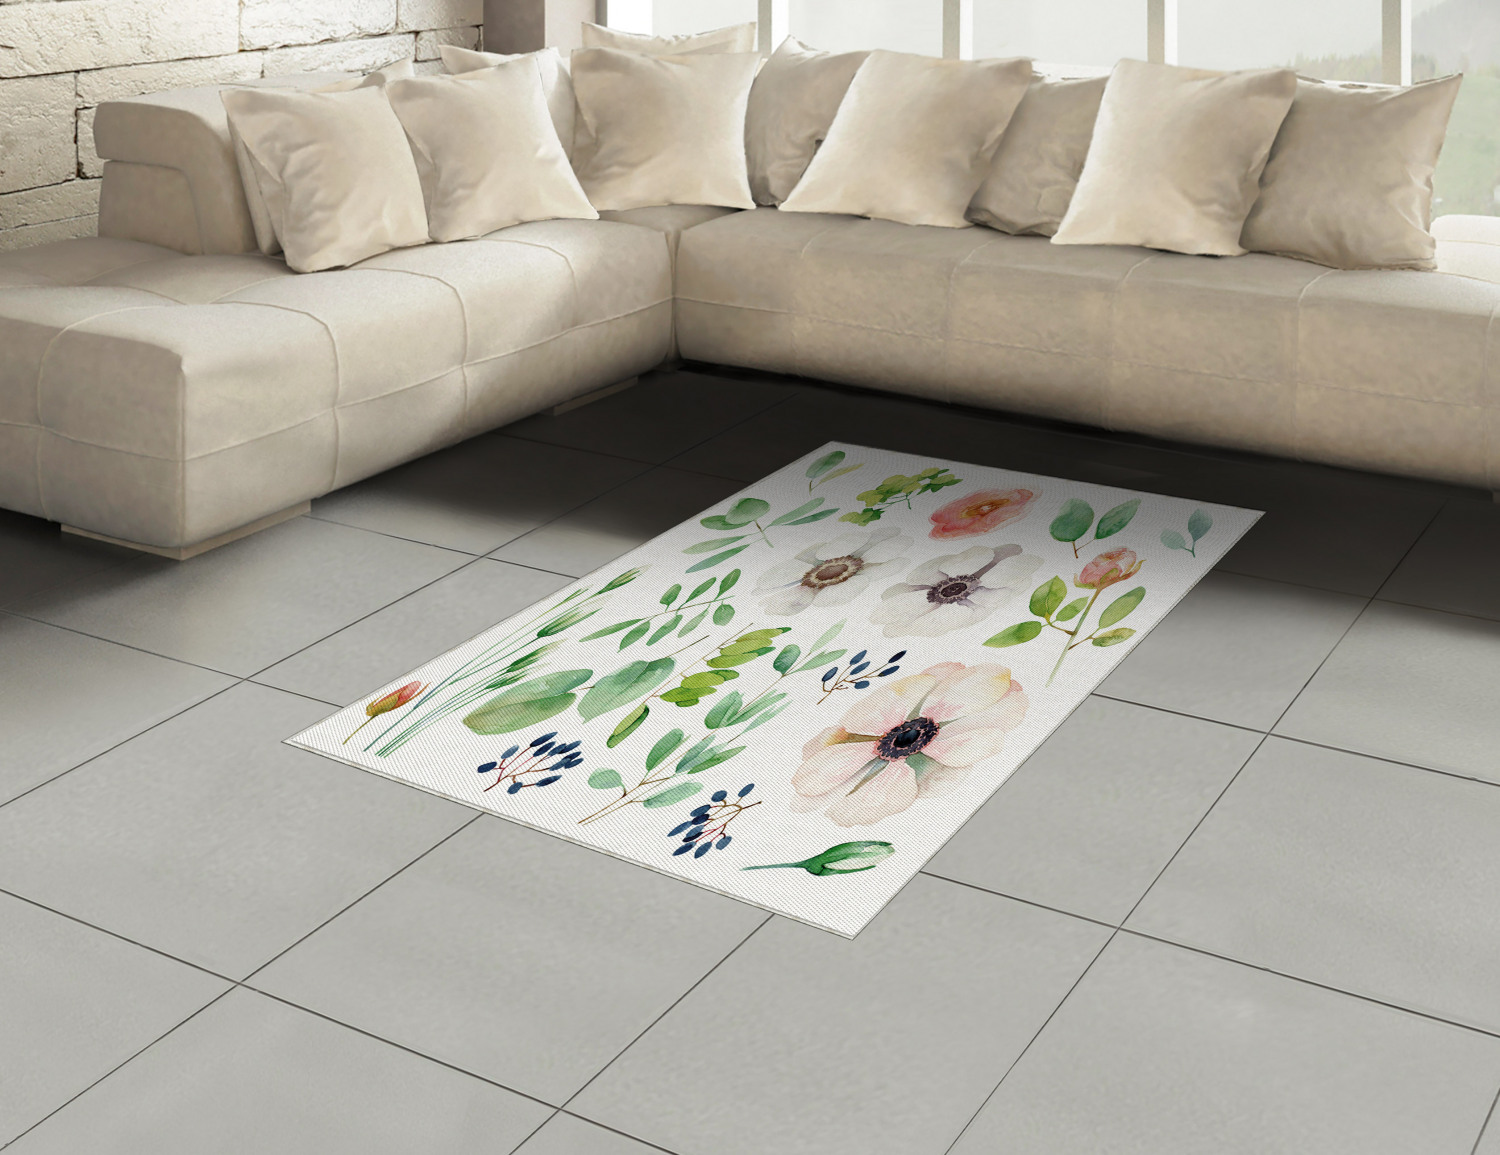 Anemone-Flower-Area-Rug-Decor-Flat-Woven-Accent-Rug-Home-Decor-2-Sizes-Ambesonne thumbnail 20